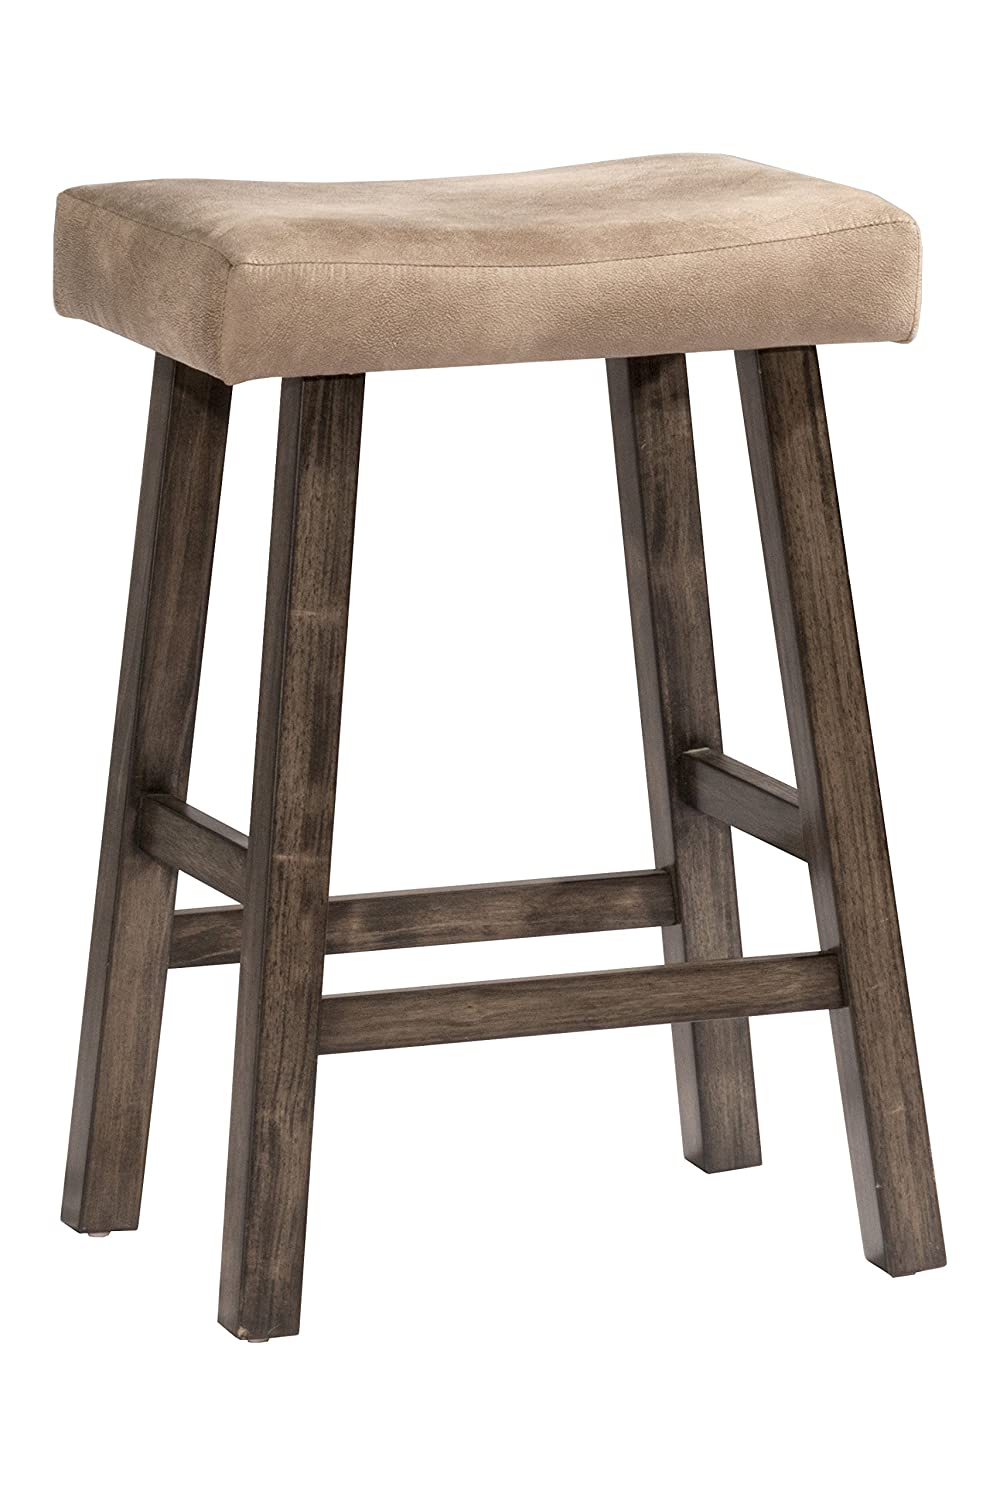 Hillsdale Furniture 4621-826 Saddle Counter Stool, Rustic Gray